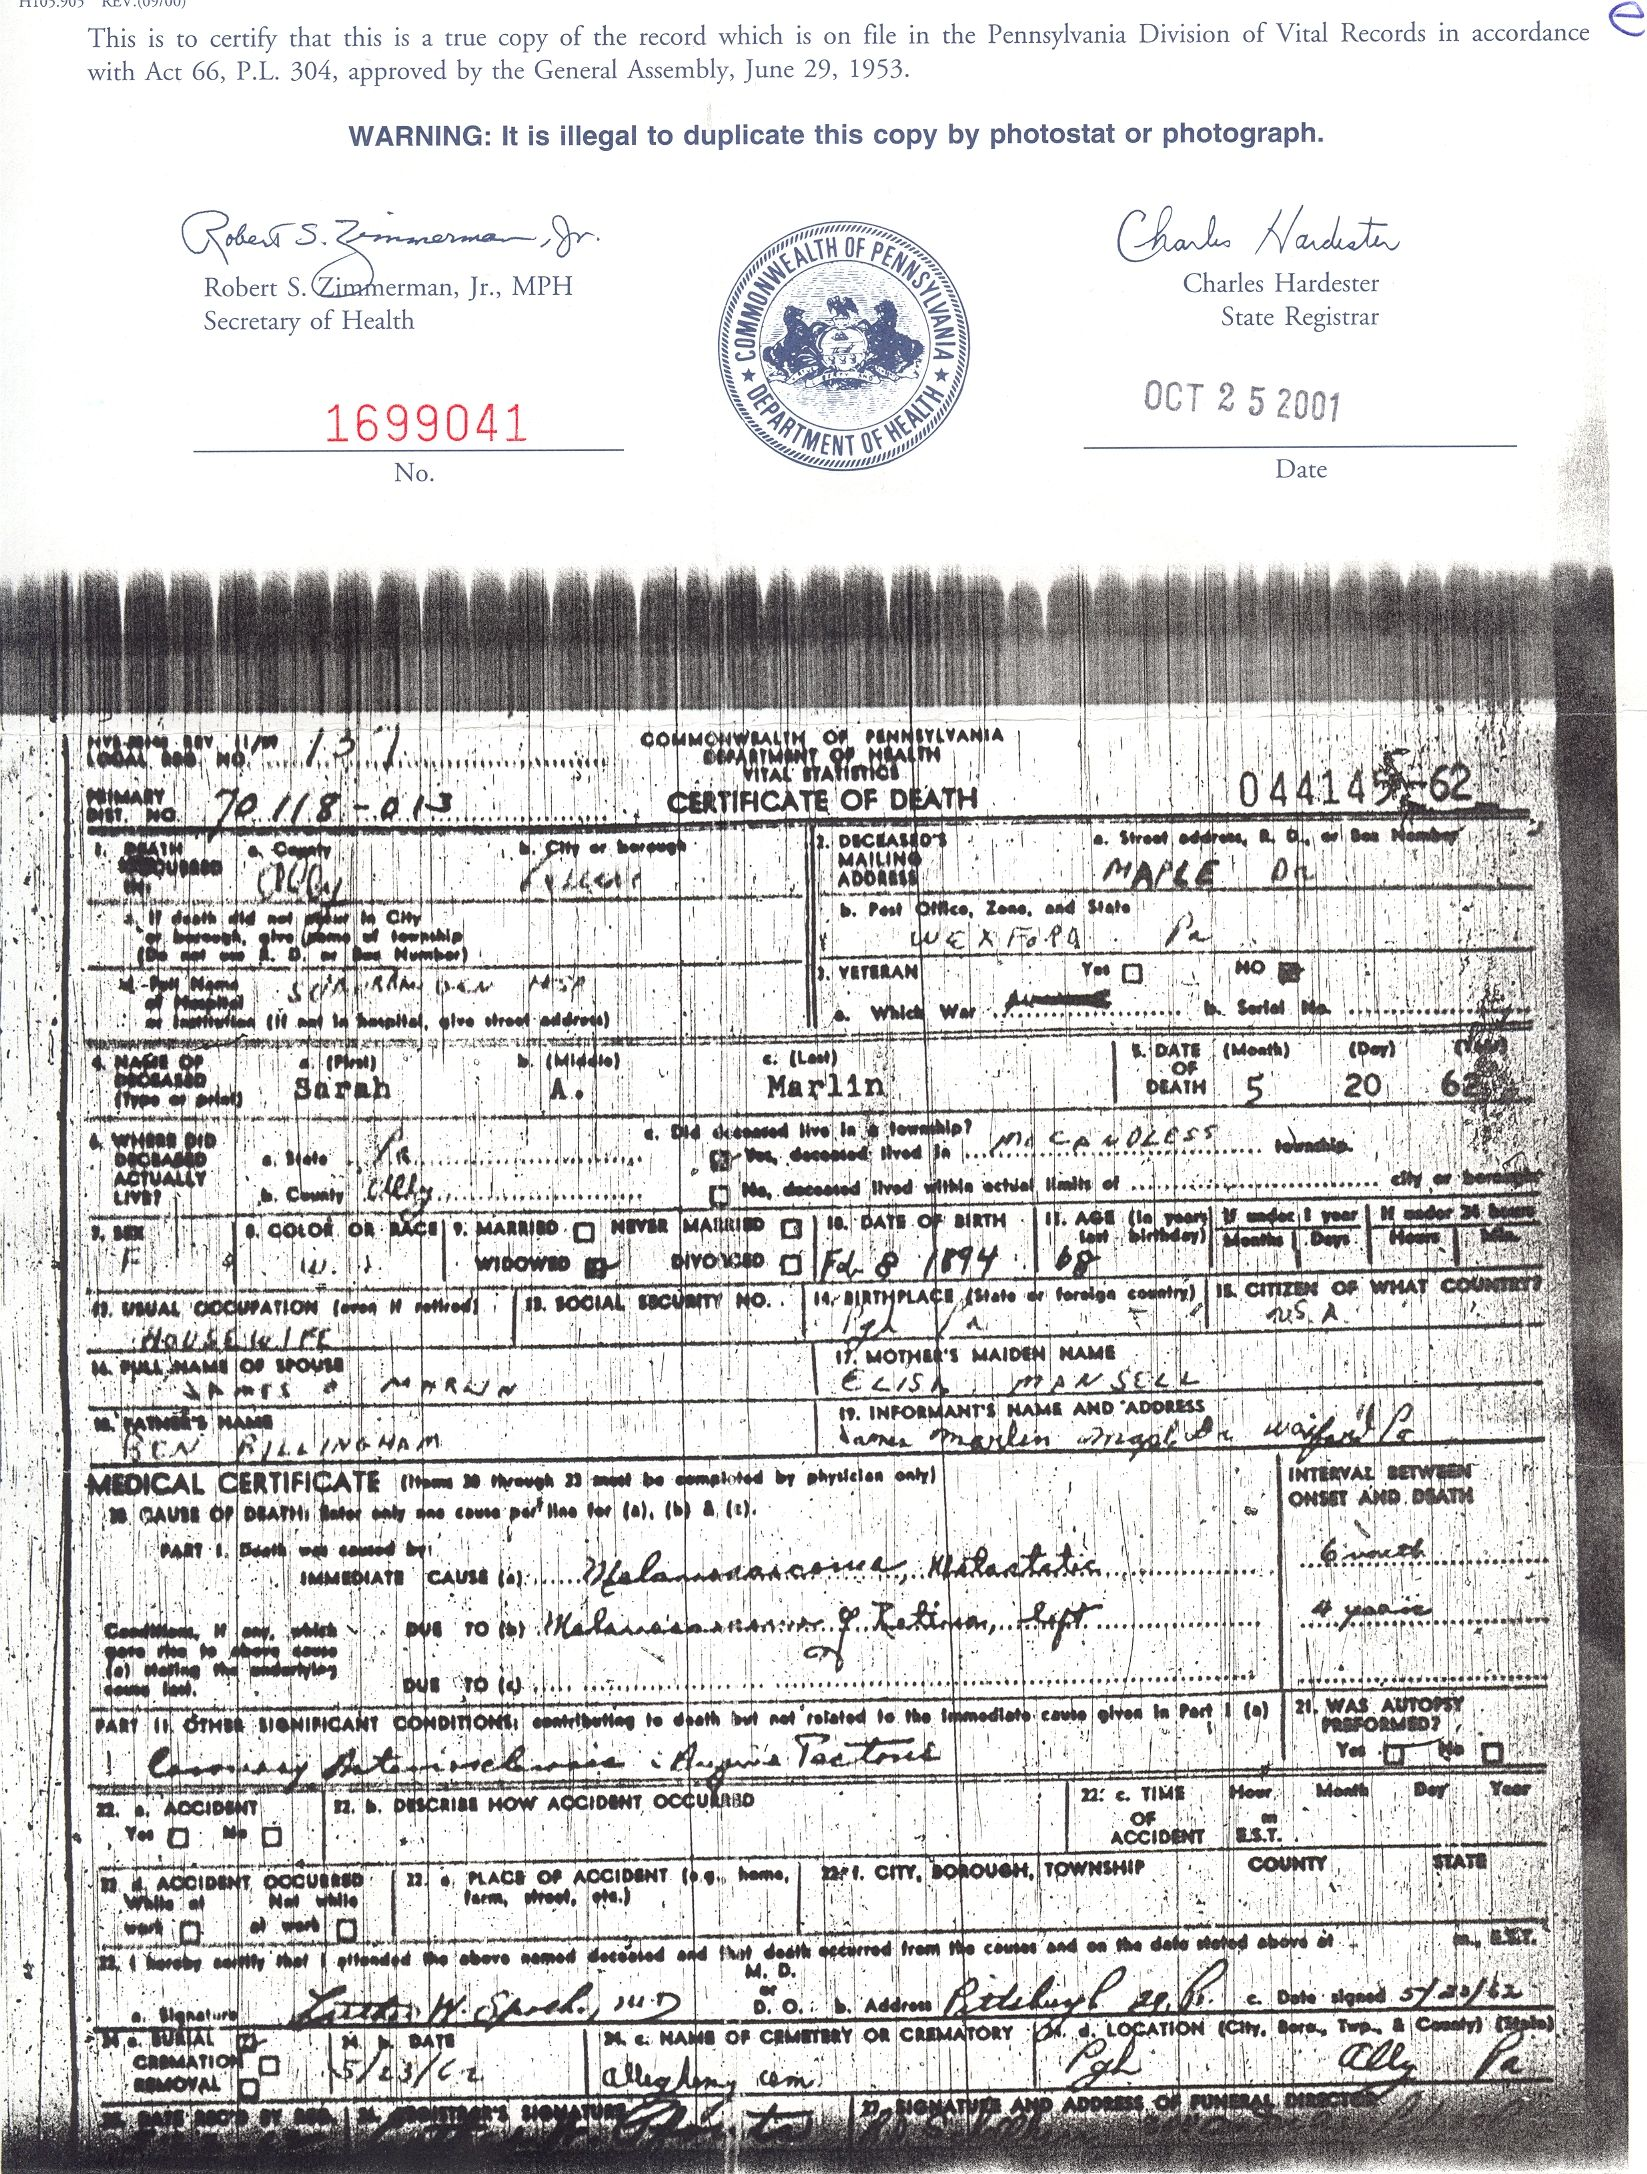 Sarah a marlin death certificate 1962 allegheny pa sarah a marlin death certificate 1962 allegheny pa xflitez Gallery